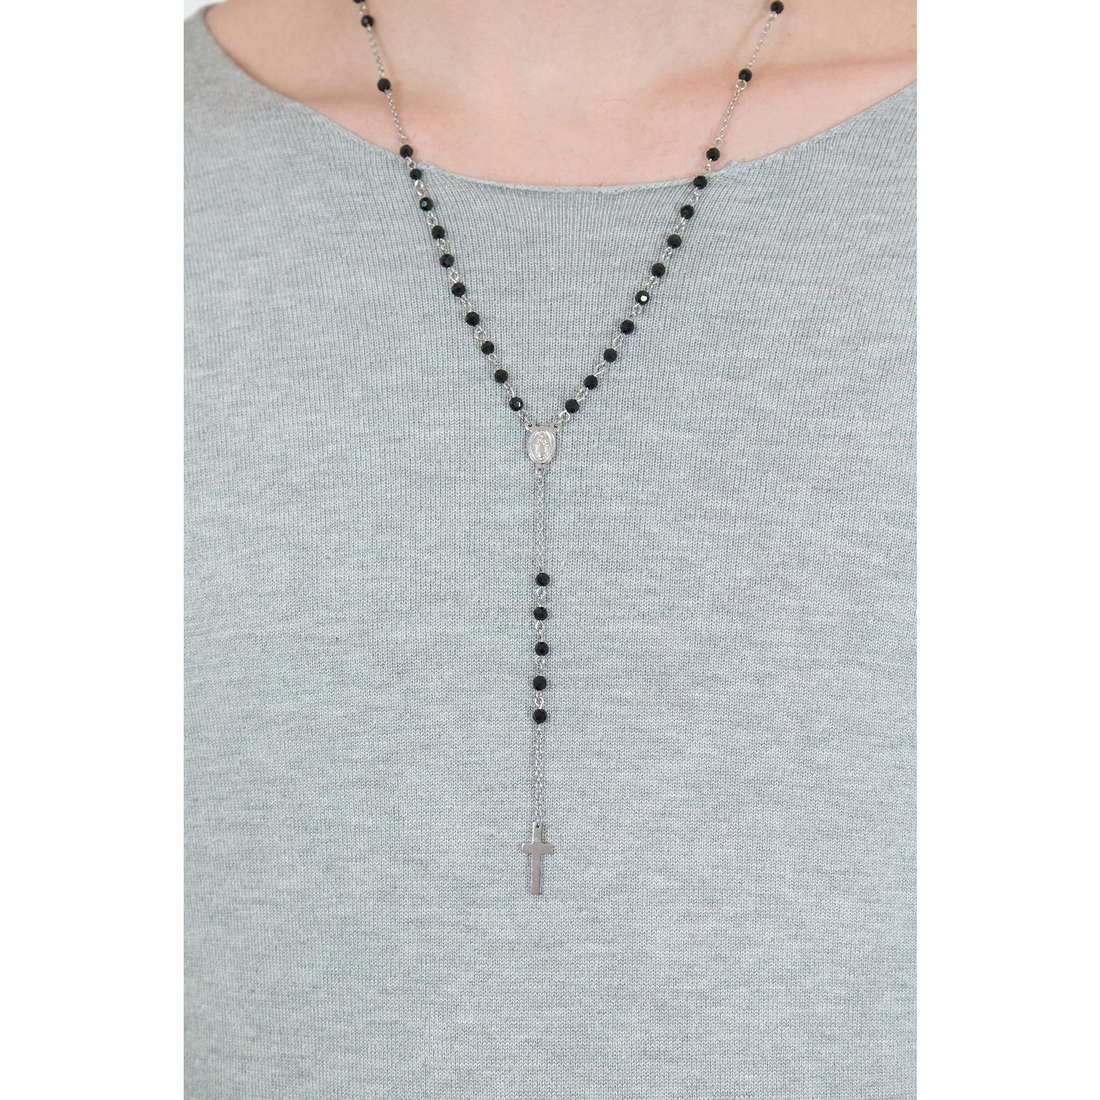 Luca Barra necklaces man LBCL185 indosso